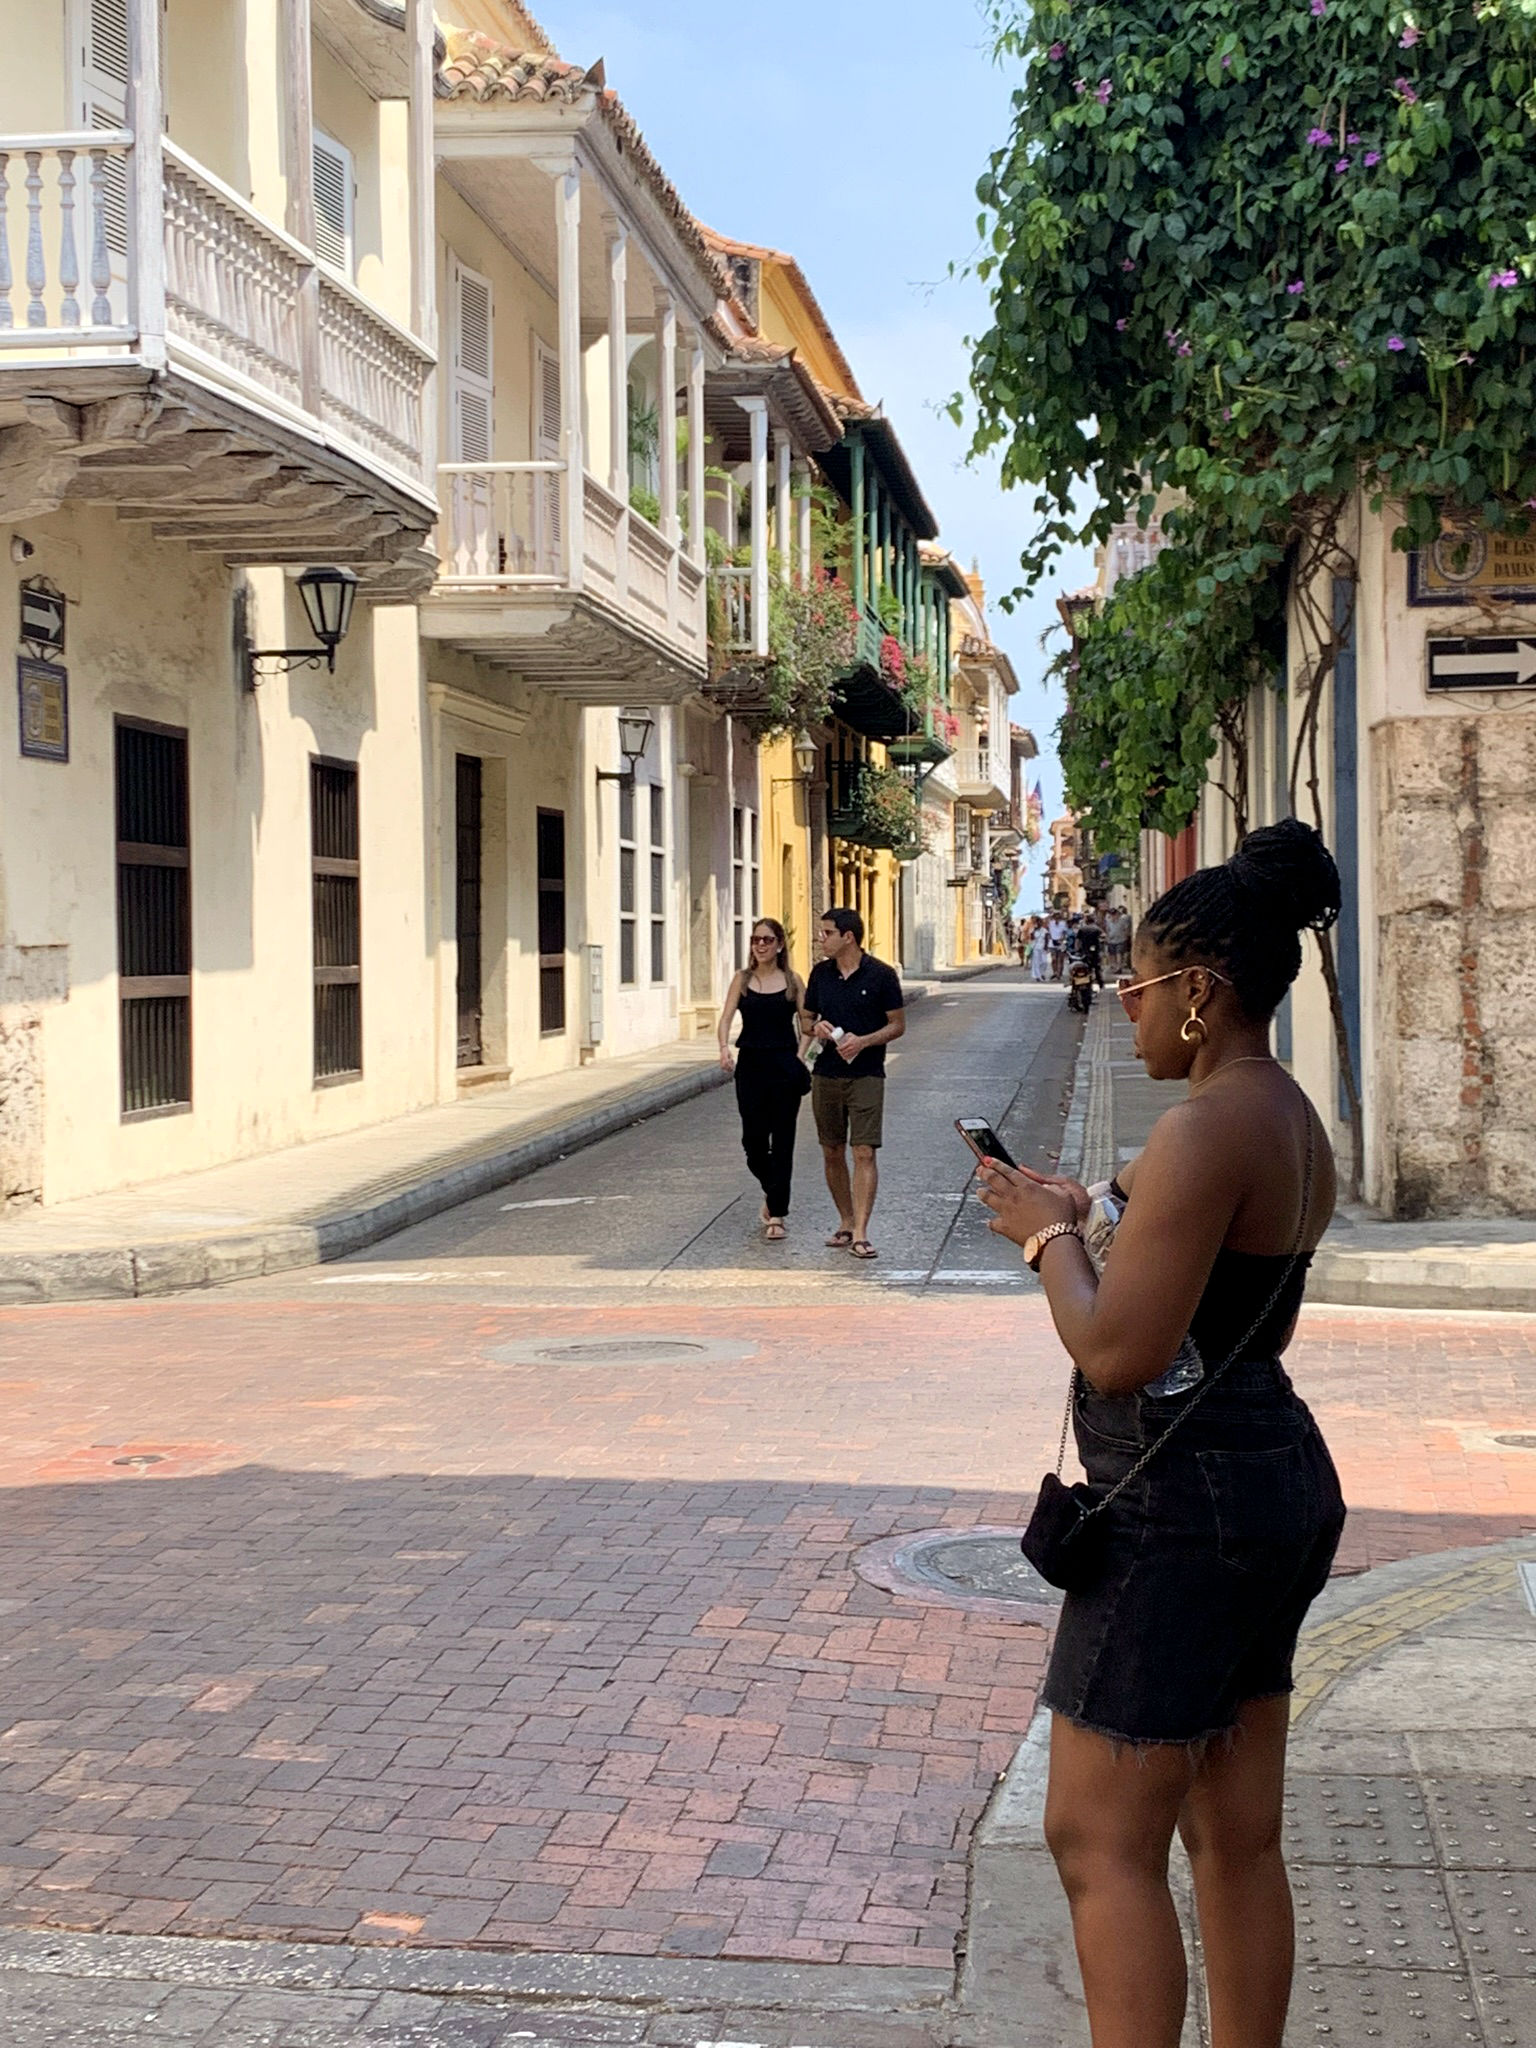 Marthadahhling Where to Stay Cartagena The walled City.jpg